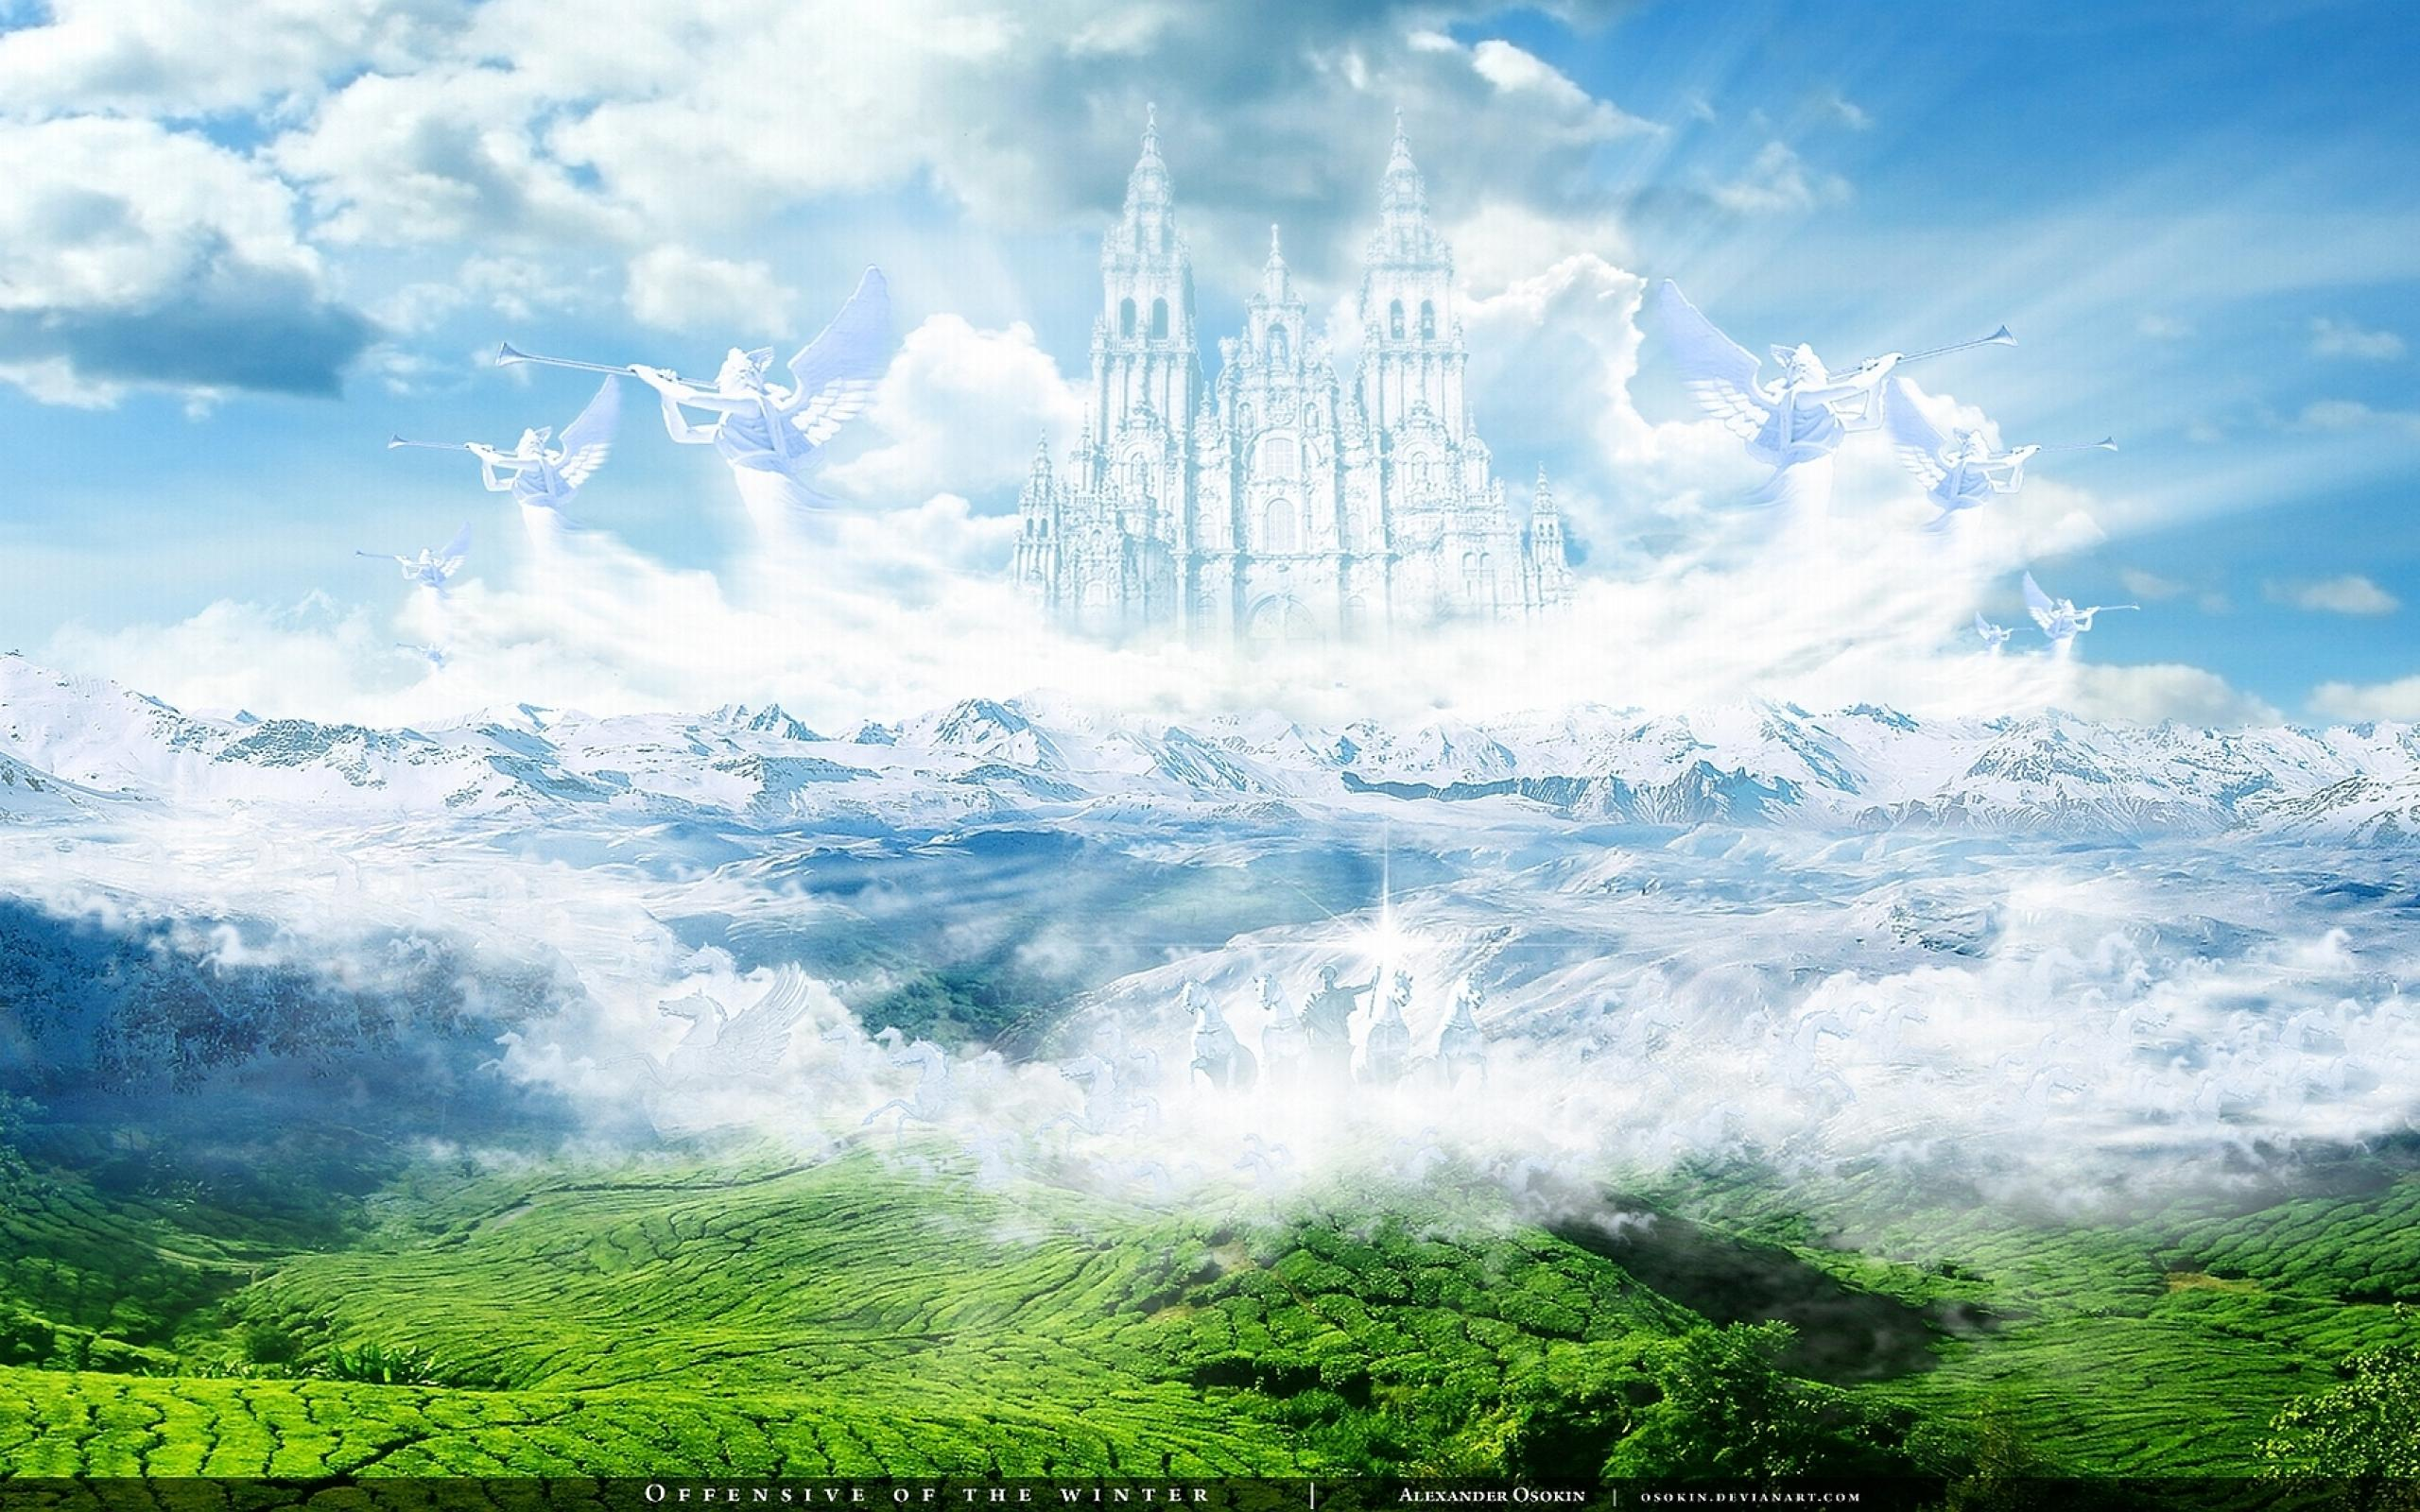 Castle In The Wallpaper Nature And Landscape Better Jpg 2560x1600 Offensive Screensavers